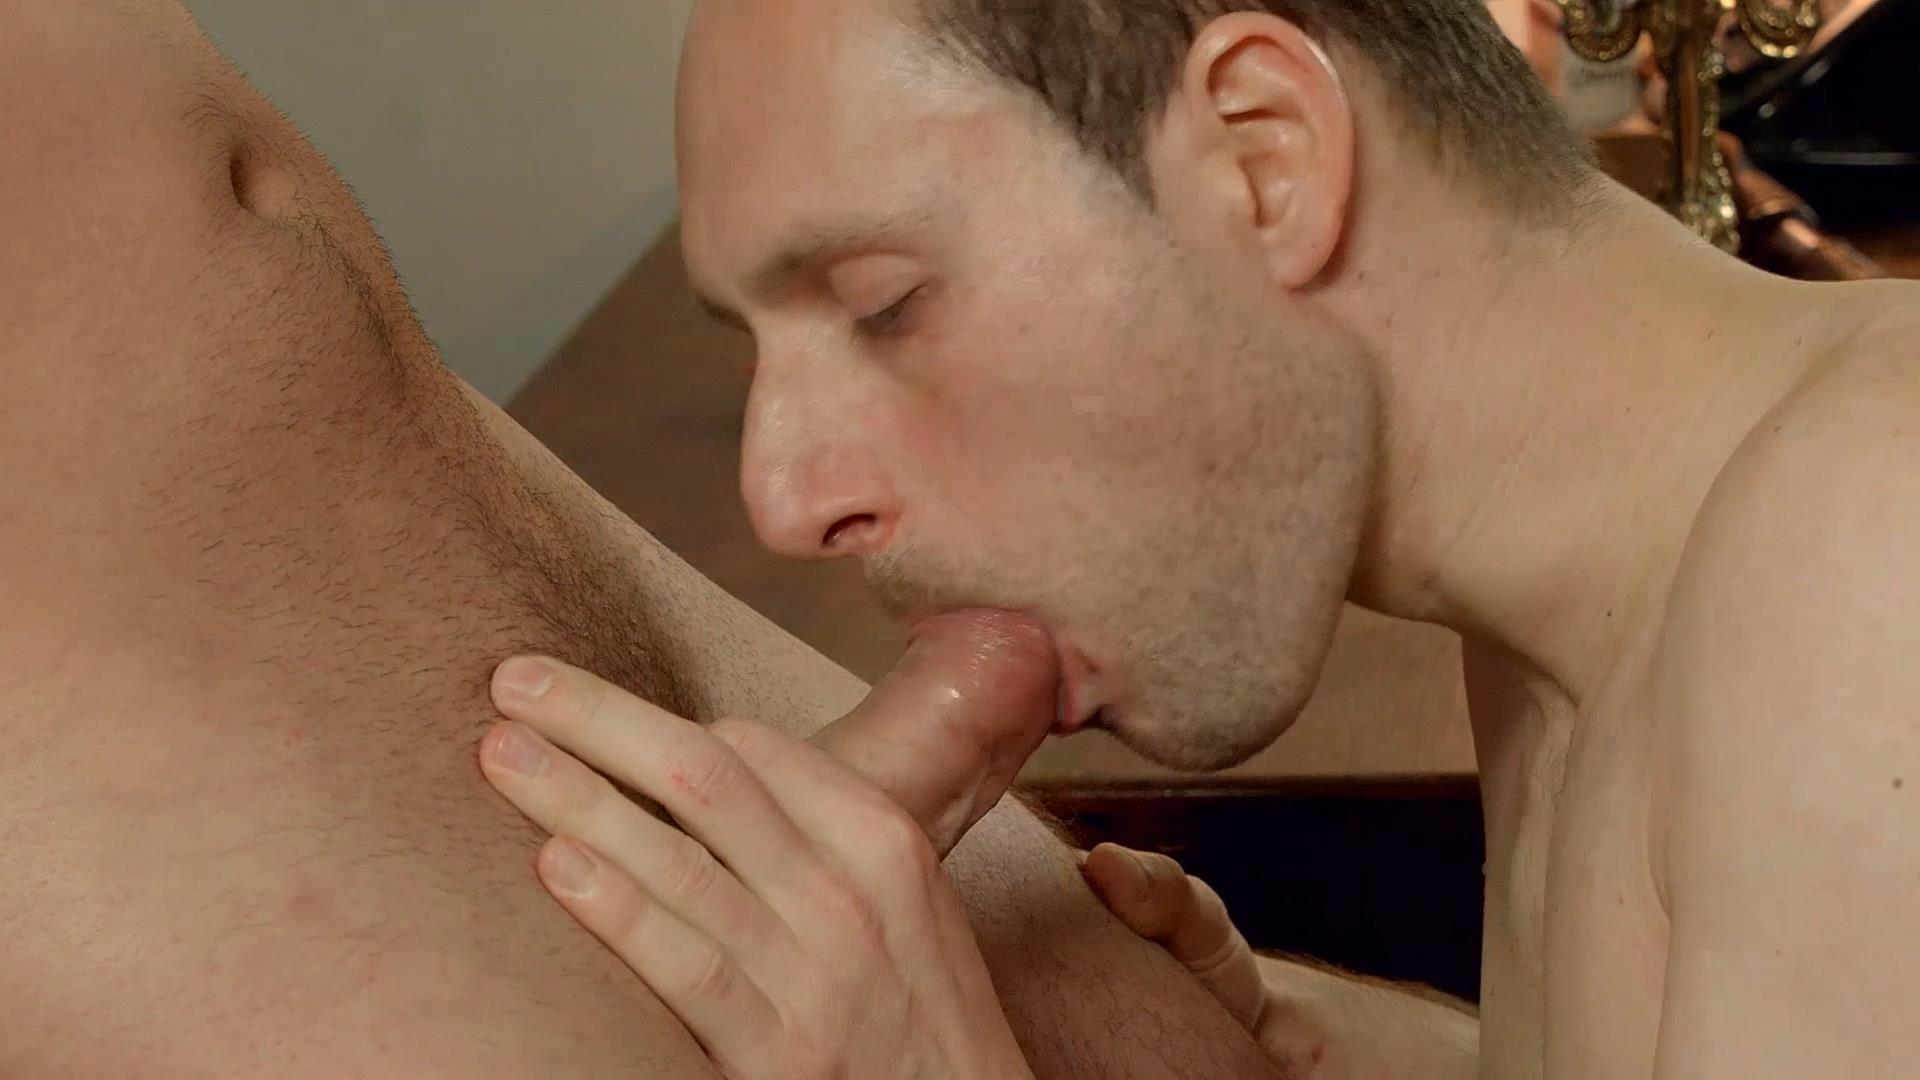 Bareback-Me-Daddy-Oscar-Hart-Priest-Fucks-Bareback-Amateur-Gay-Porn-09 College Boy Gets Fucked Bareback By An Older Priest With A Big Uncut Cock